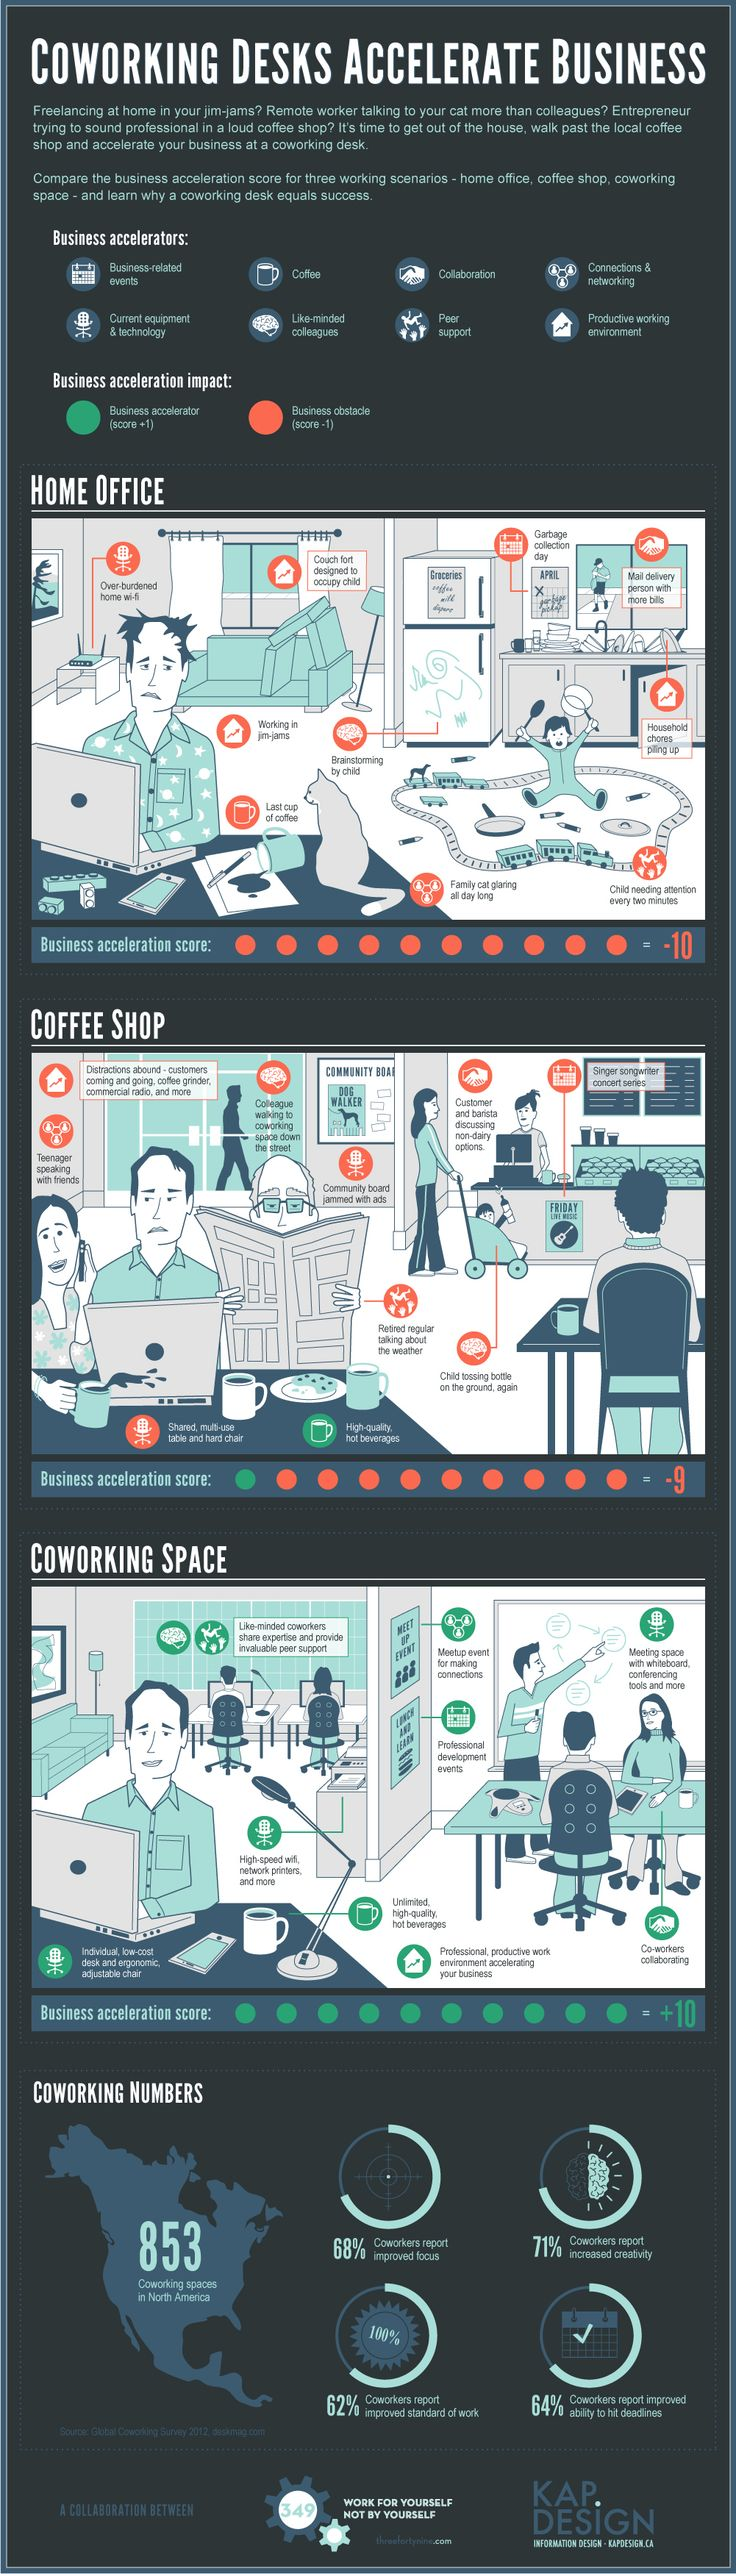 Coworking desks accelerate business #infographic